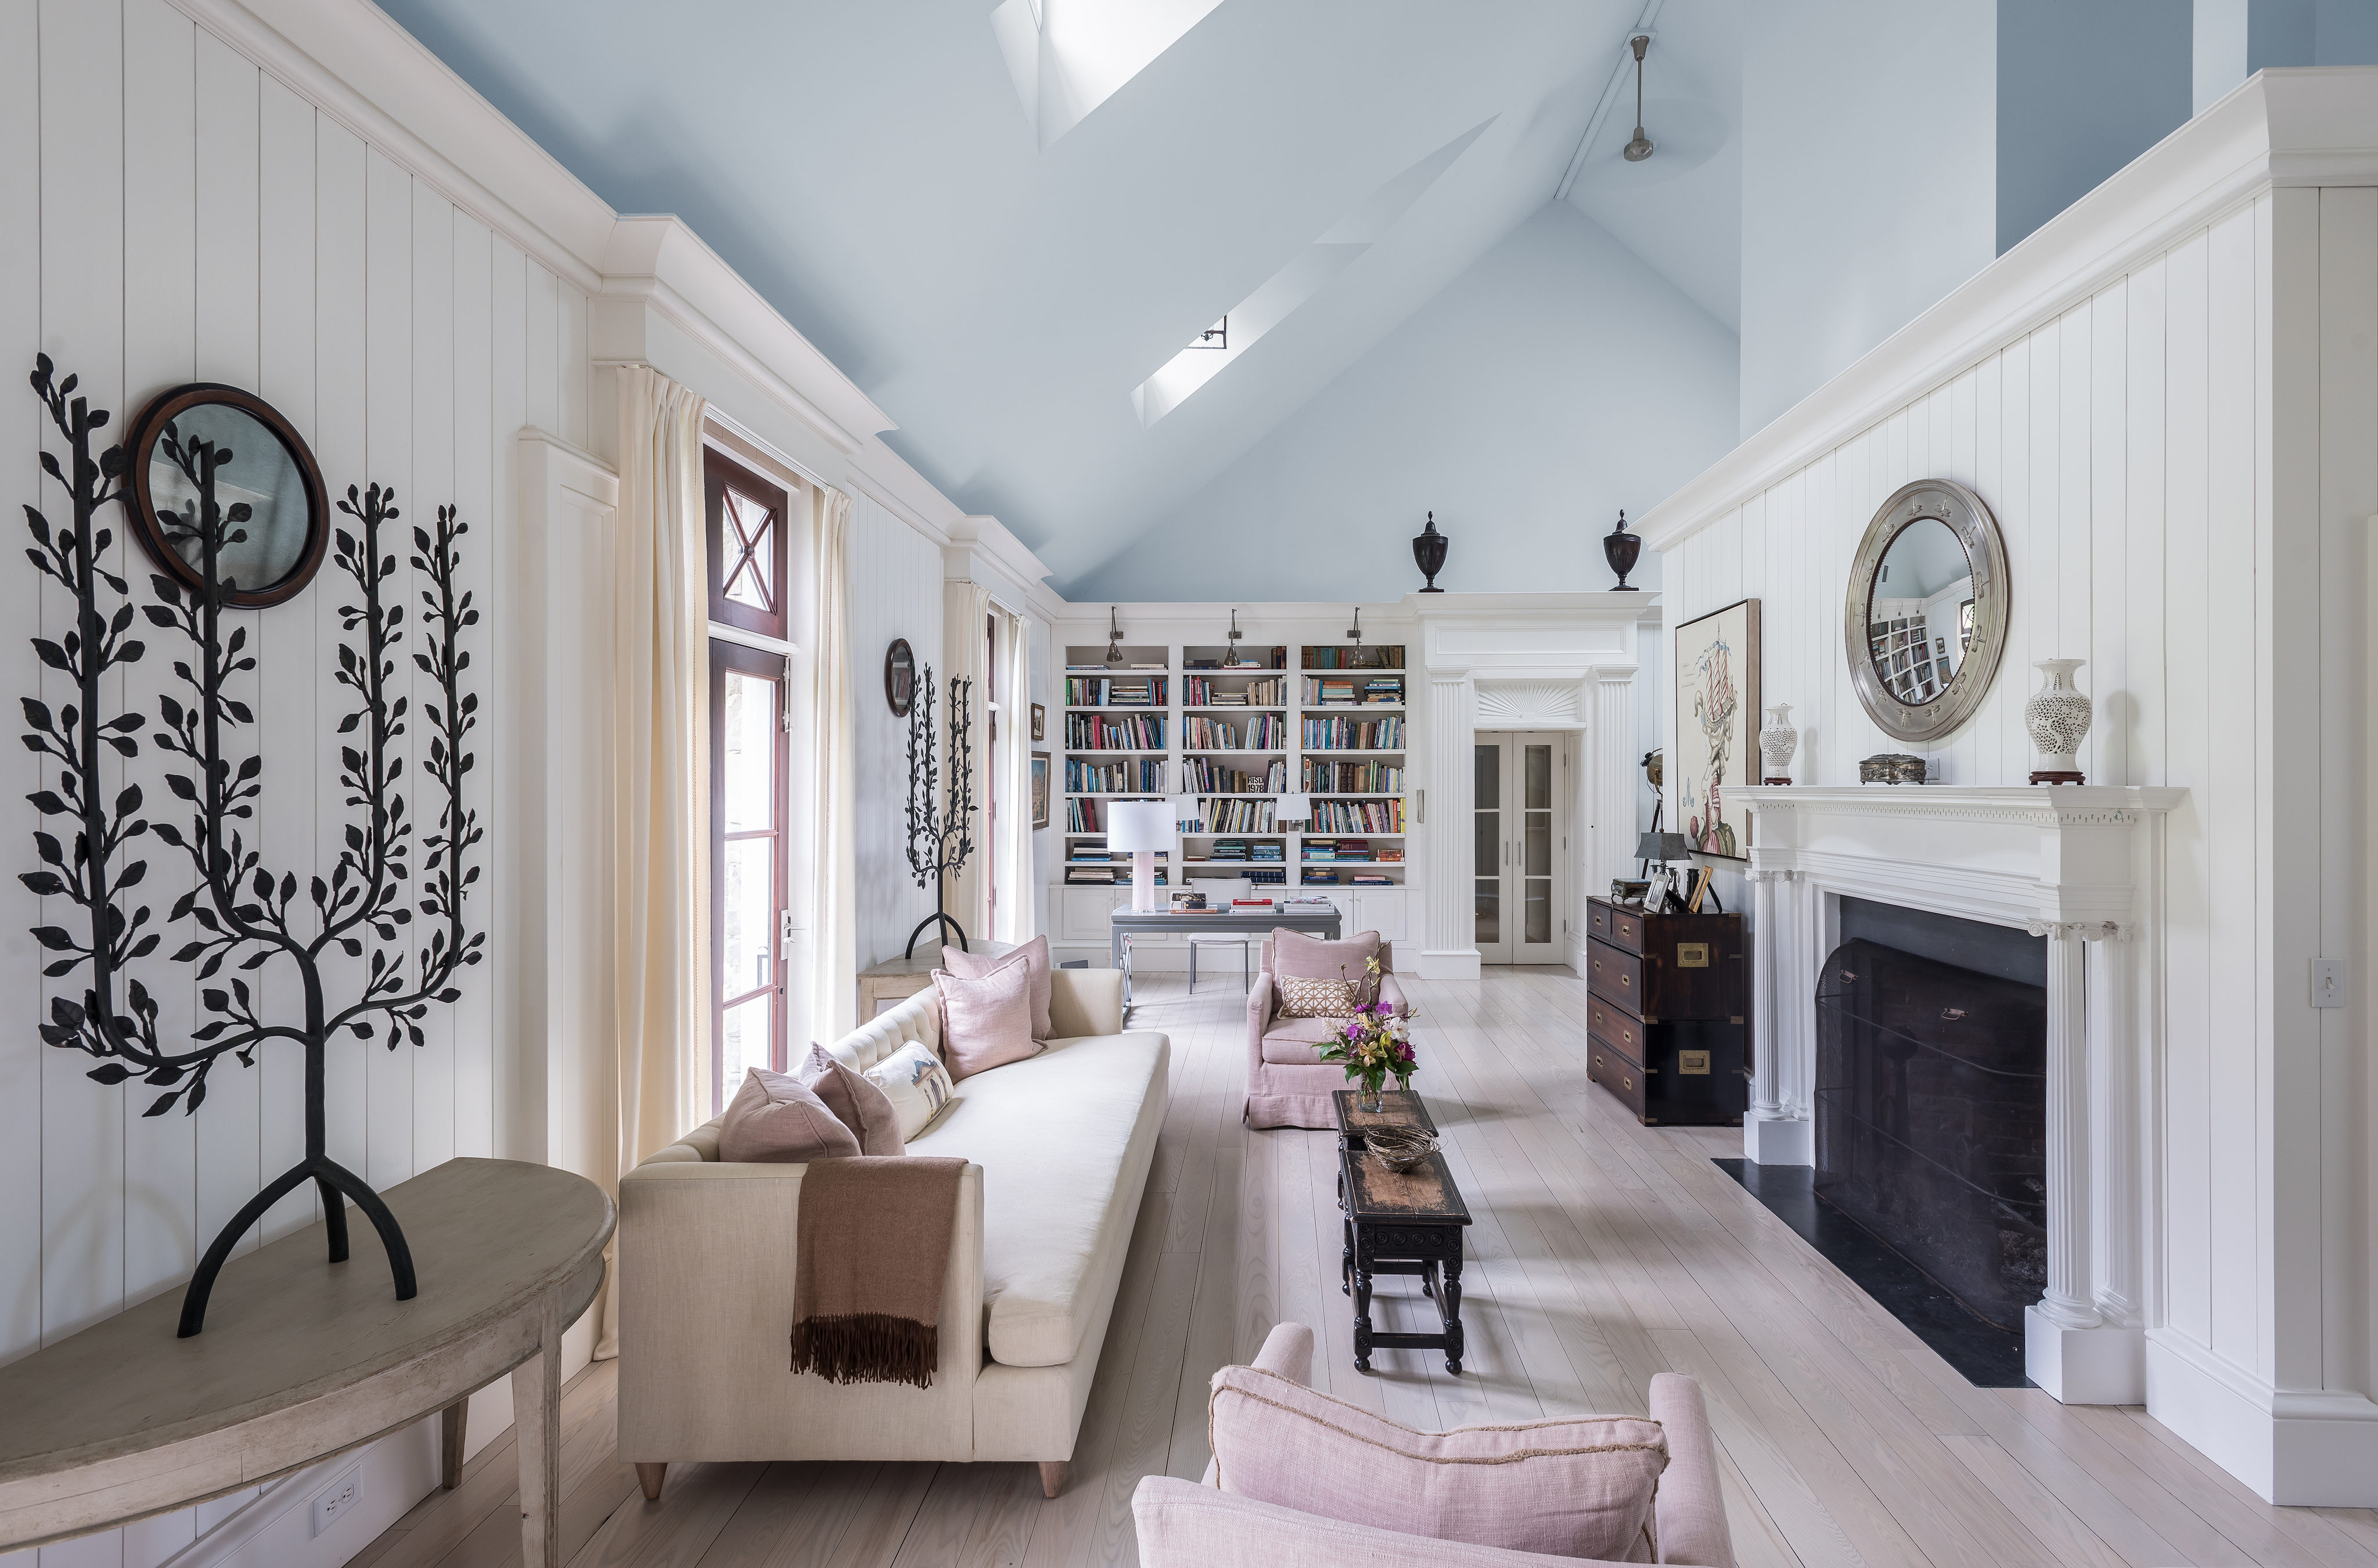 Open Concept Great Room at Luxe Barn, Falmouth by Banks Design Associates Ltd.